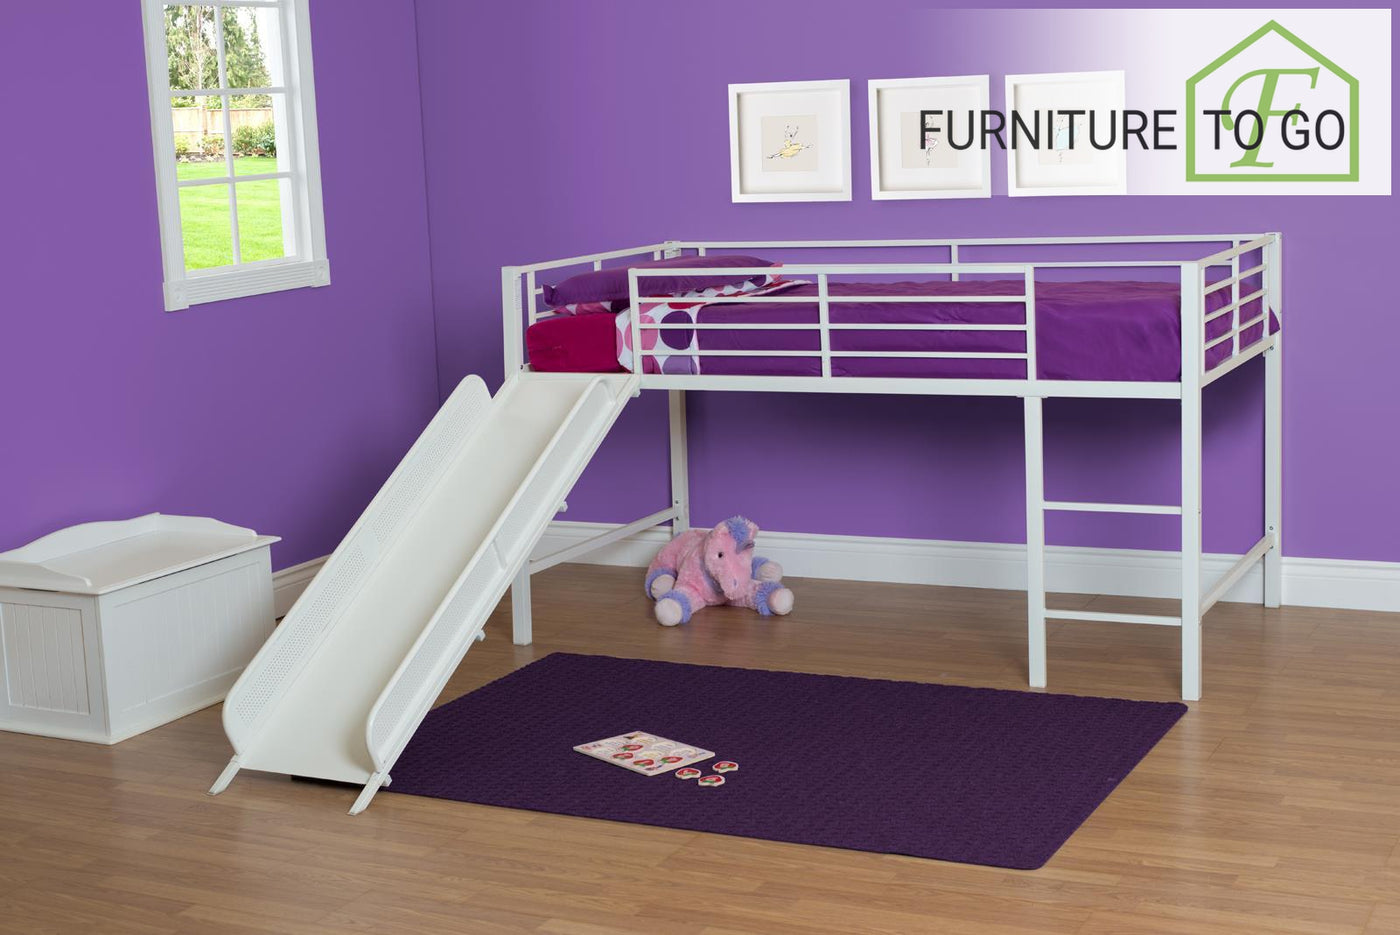 Clearance Furniture In Dallas 12500 White Twin Junior Loft Bed With